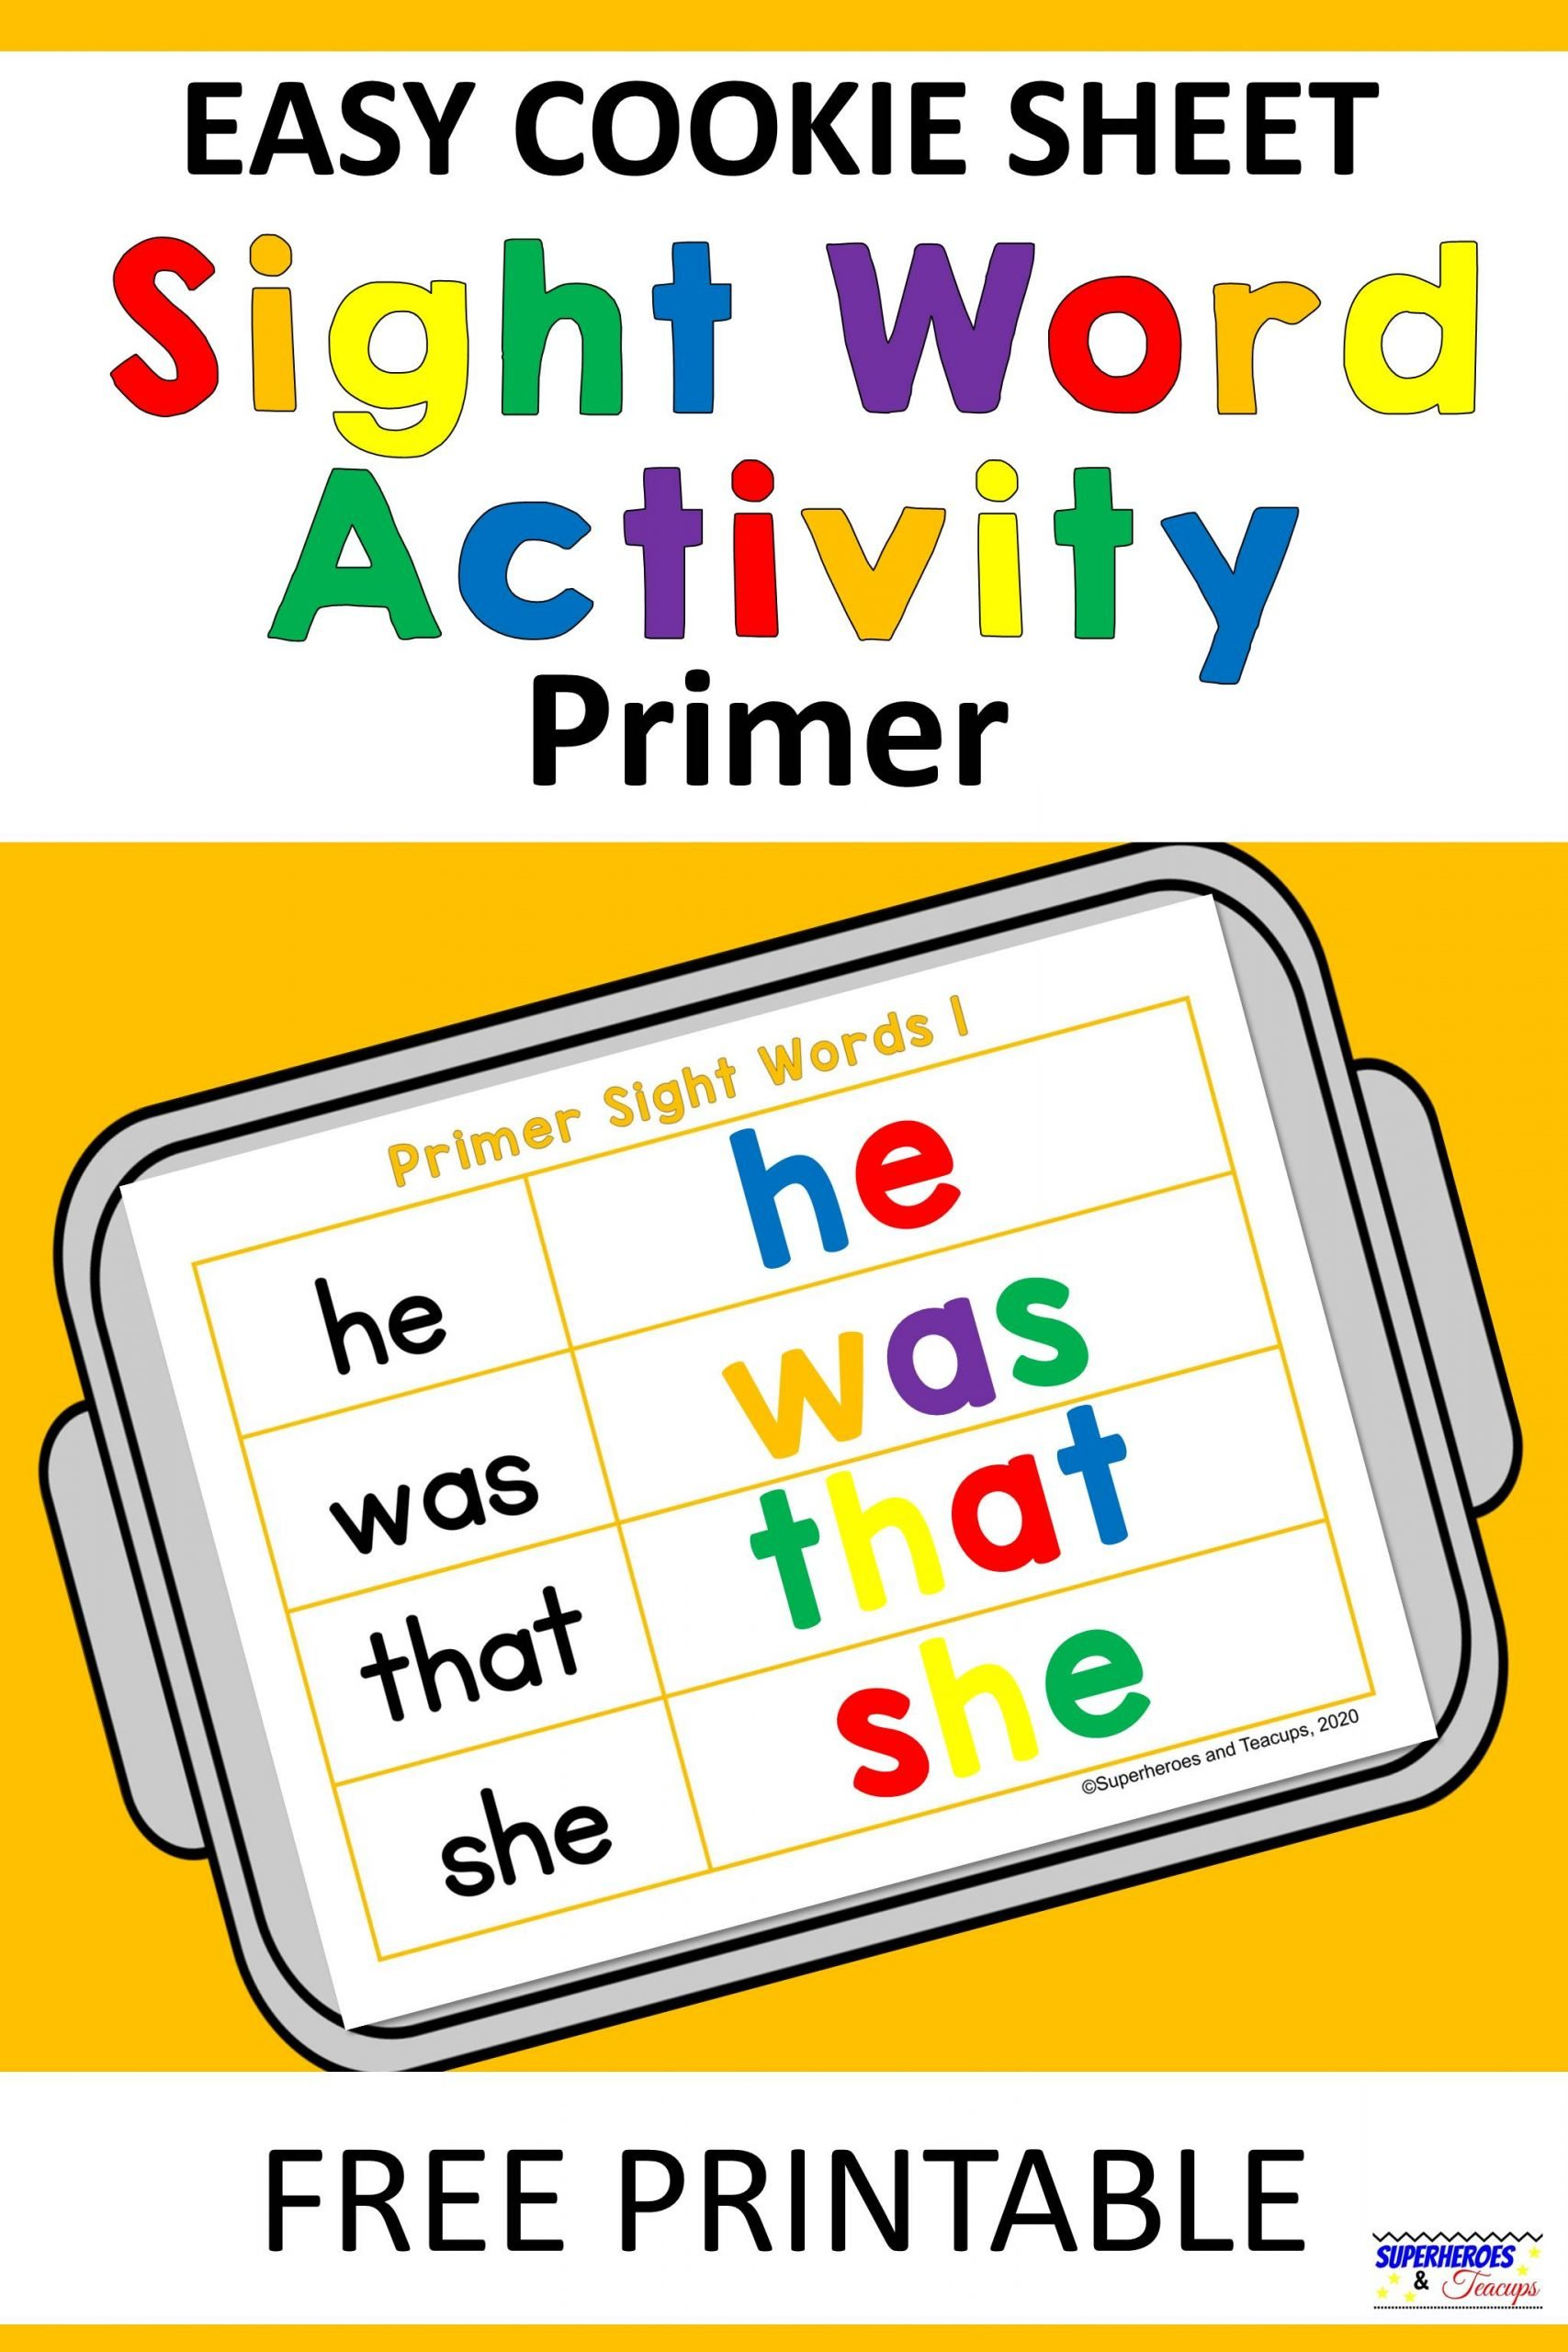 Cookie Sheet Primer Sight Word Activity